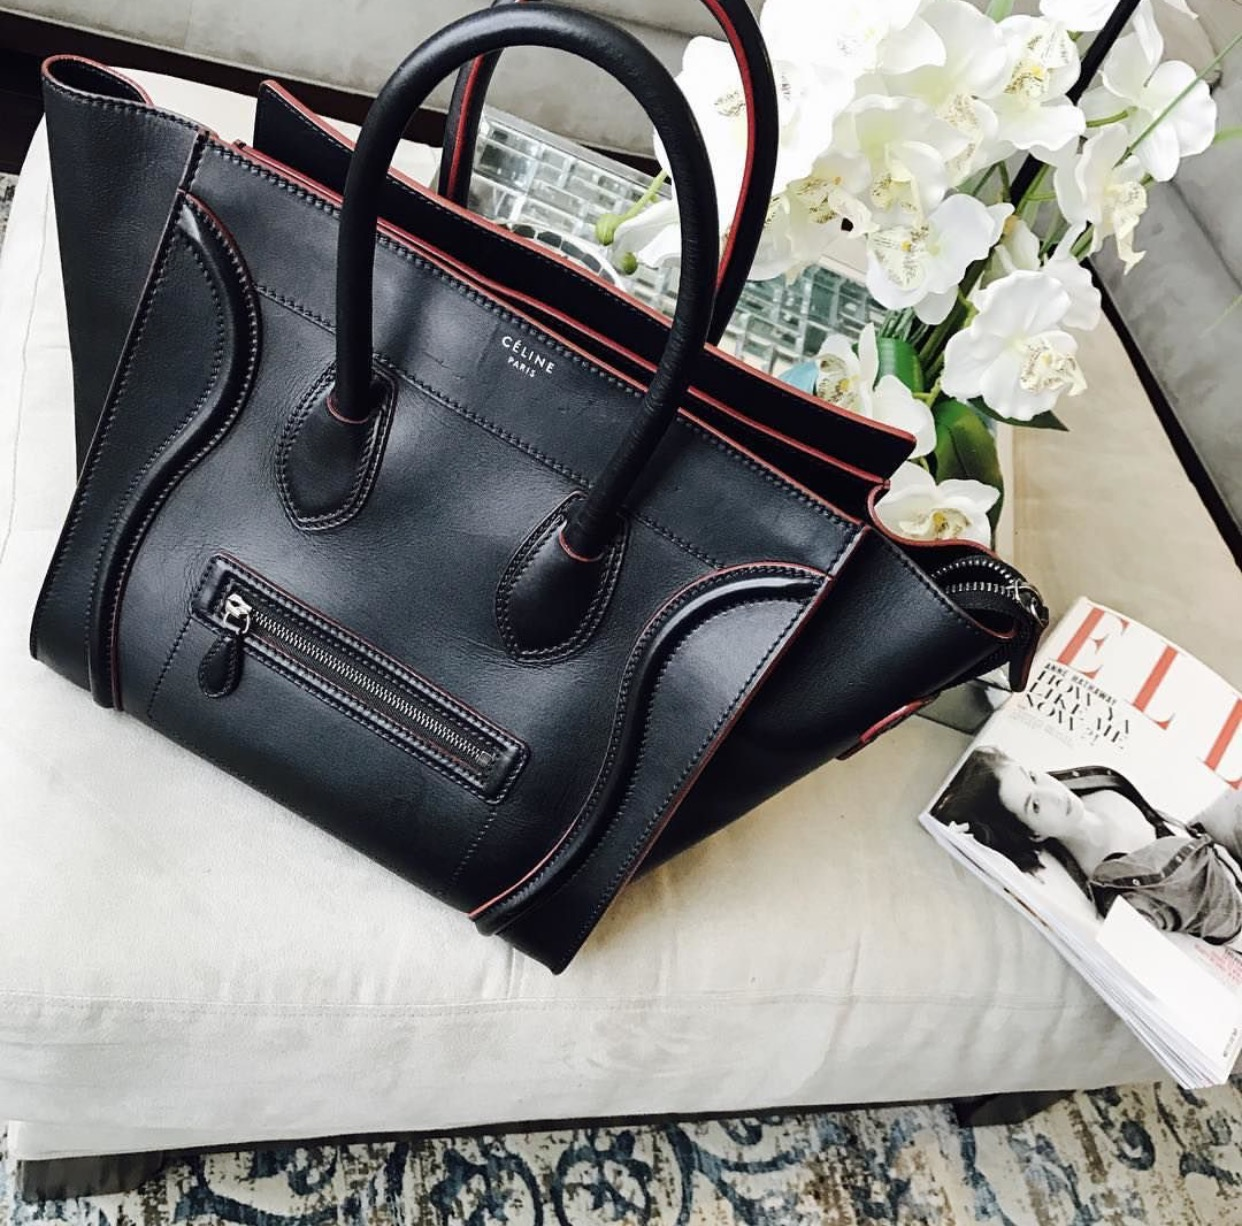 celine luggage - Now this bag is one that you don't see a lot of on my Instagram page but this is definitely my most worn bag. This is the perfect travel/work bag, you can fit everything in it and it makes any outfit look chic. I purchased this bag pre-loved from Fashionphilein February of this year and it still looks brand new. I wear it almost everyday to work and I use it as my carry-on whenever I travel.